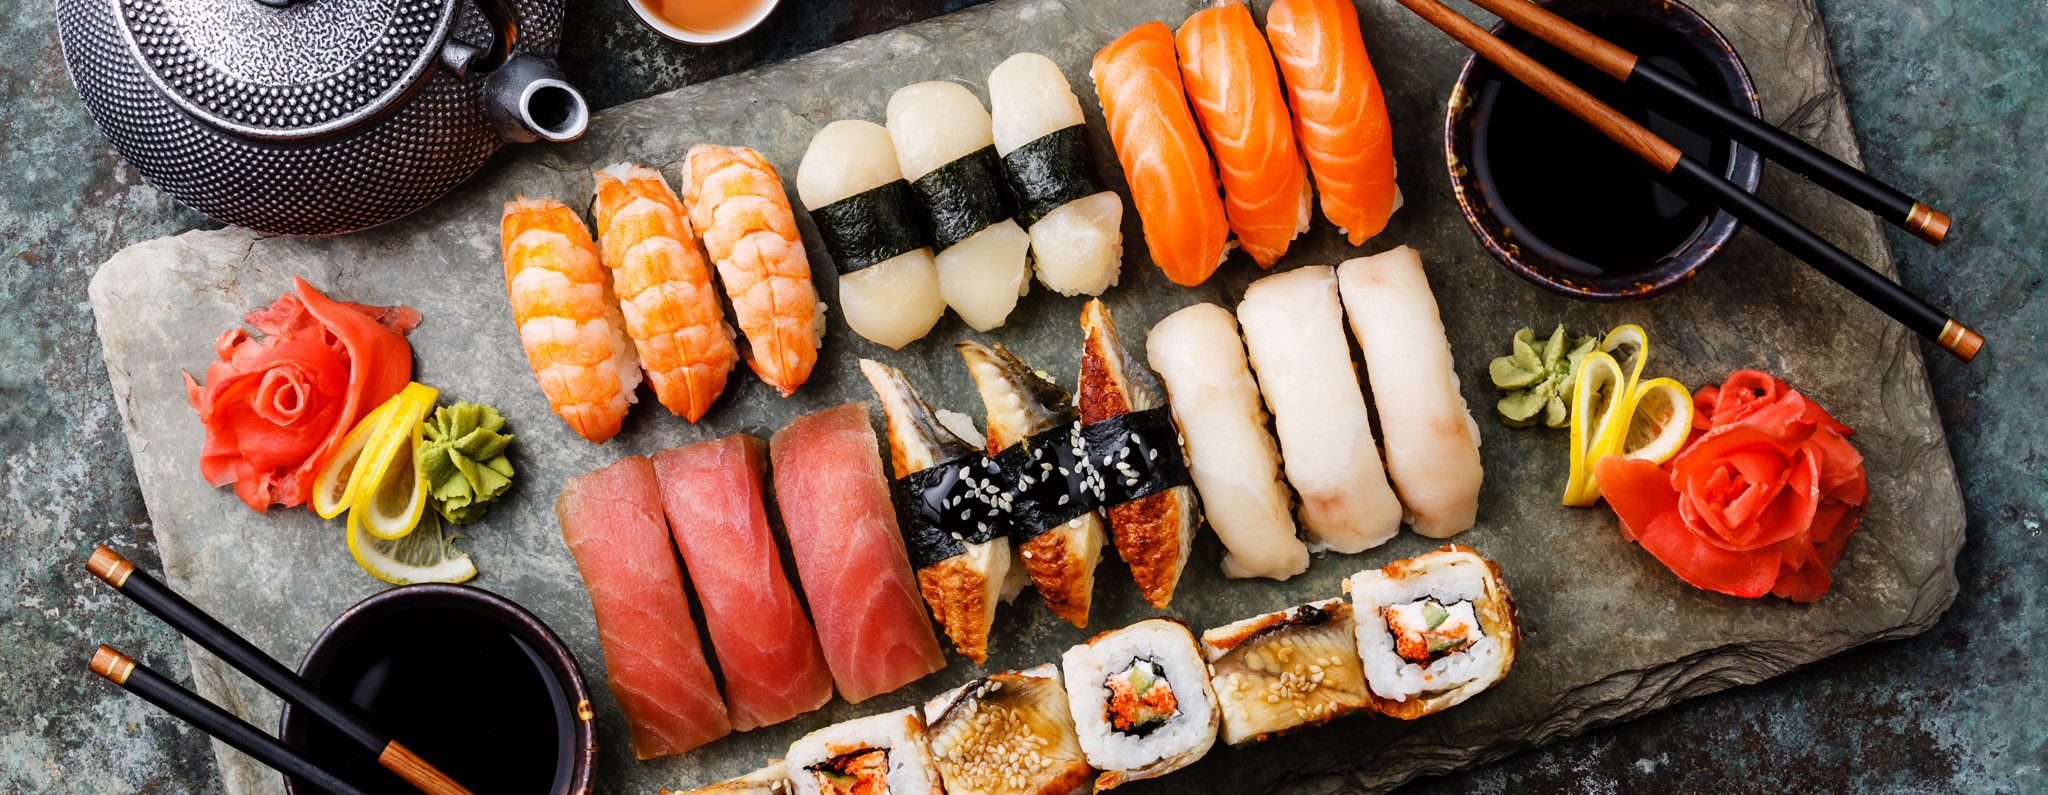 Bilder VU Header Photography 05 Restaurant - Sushi